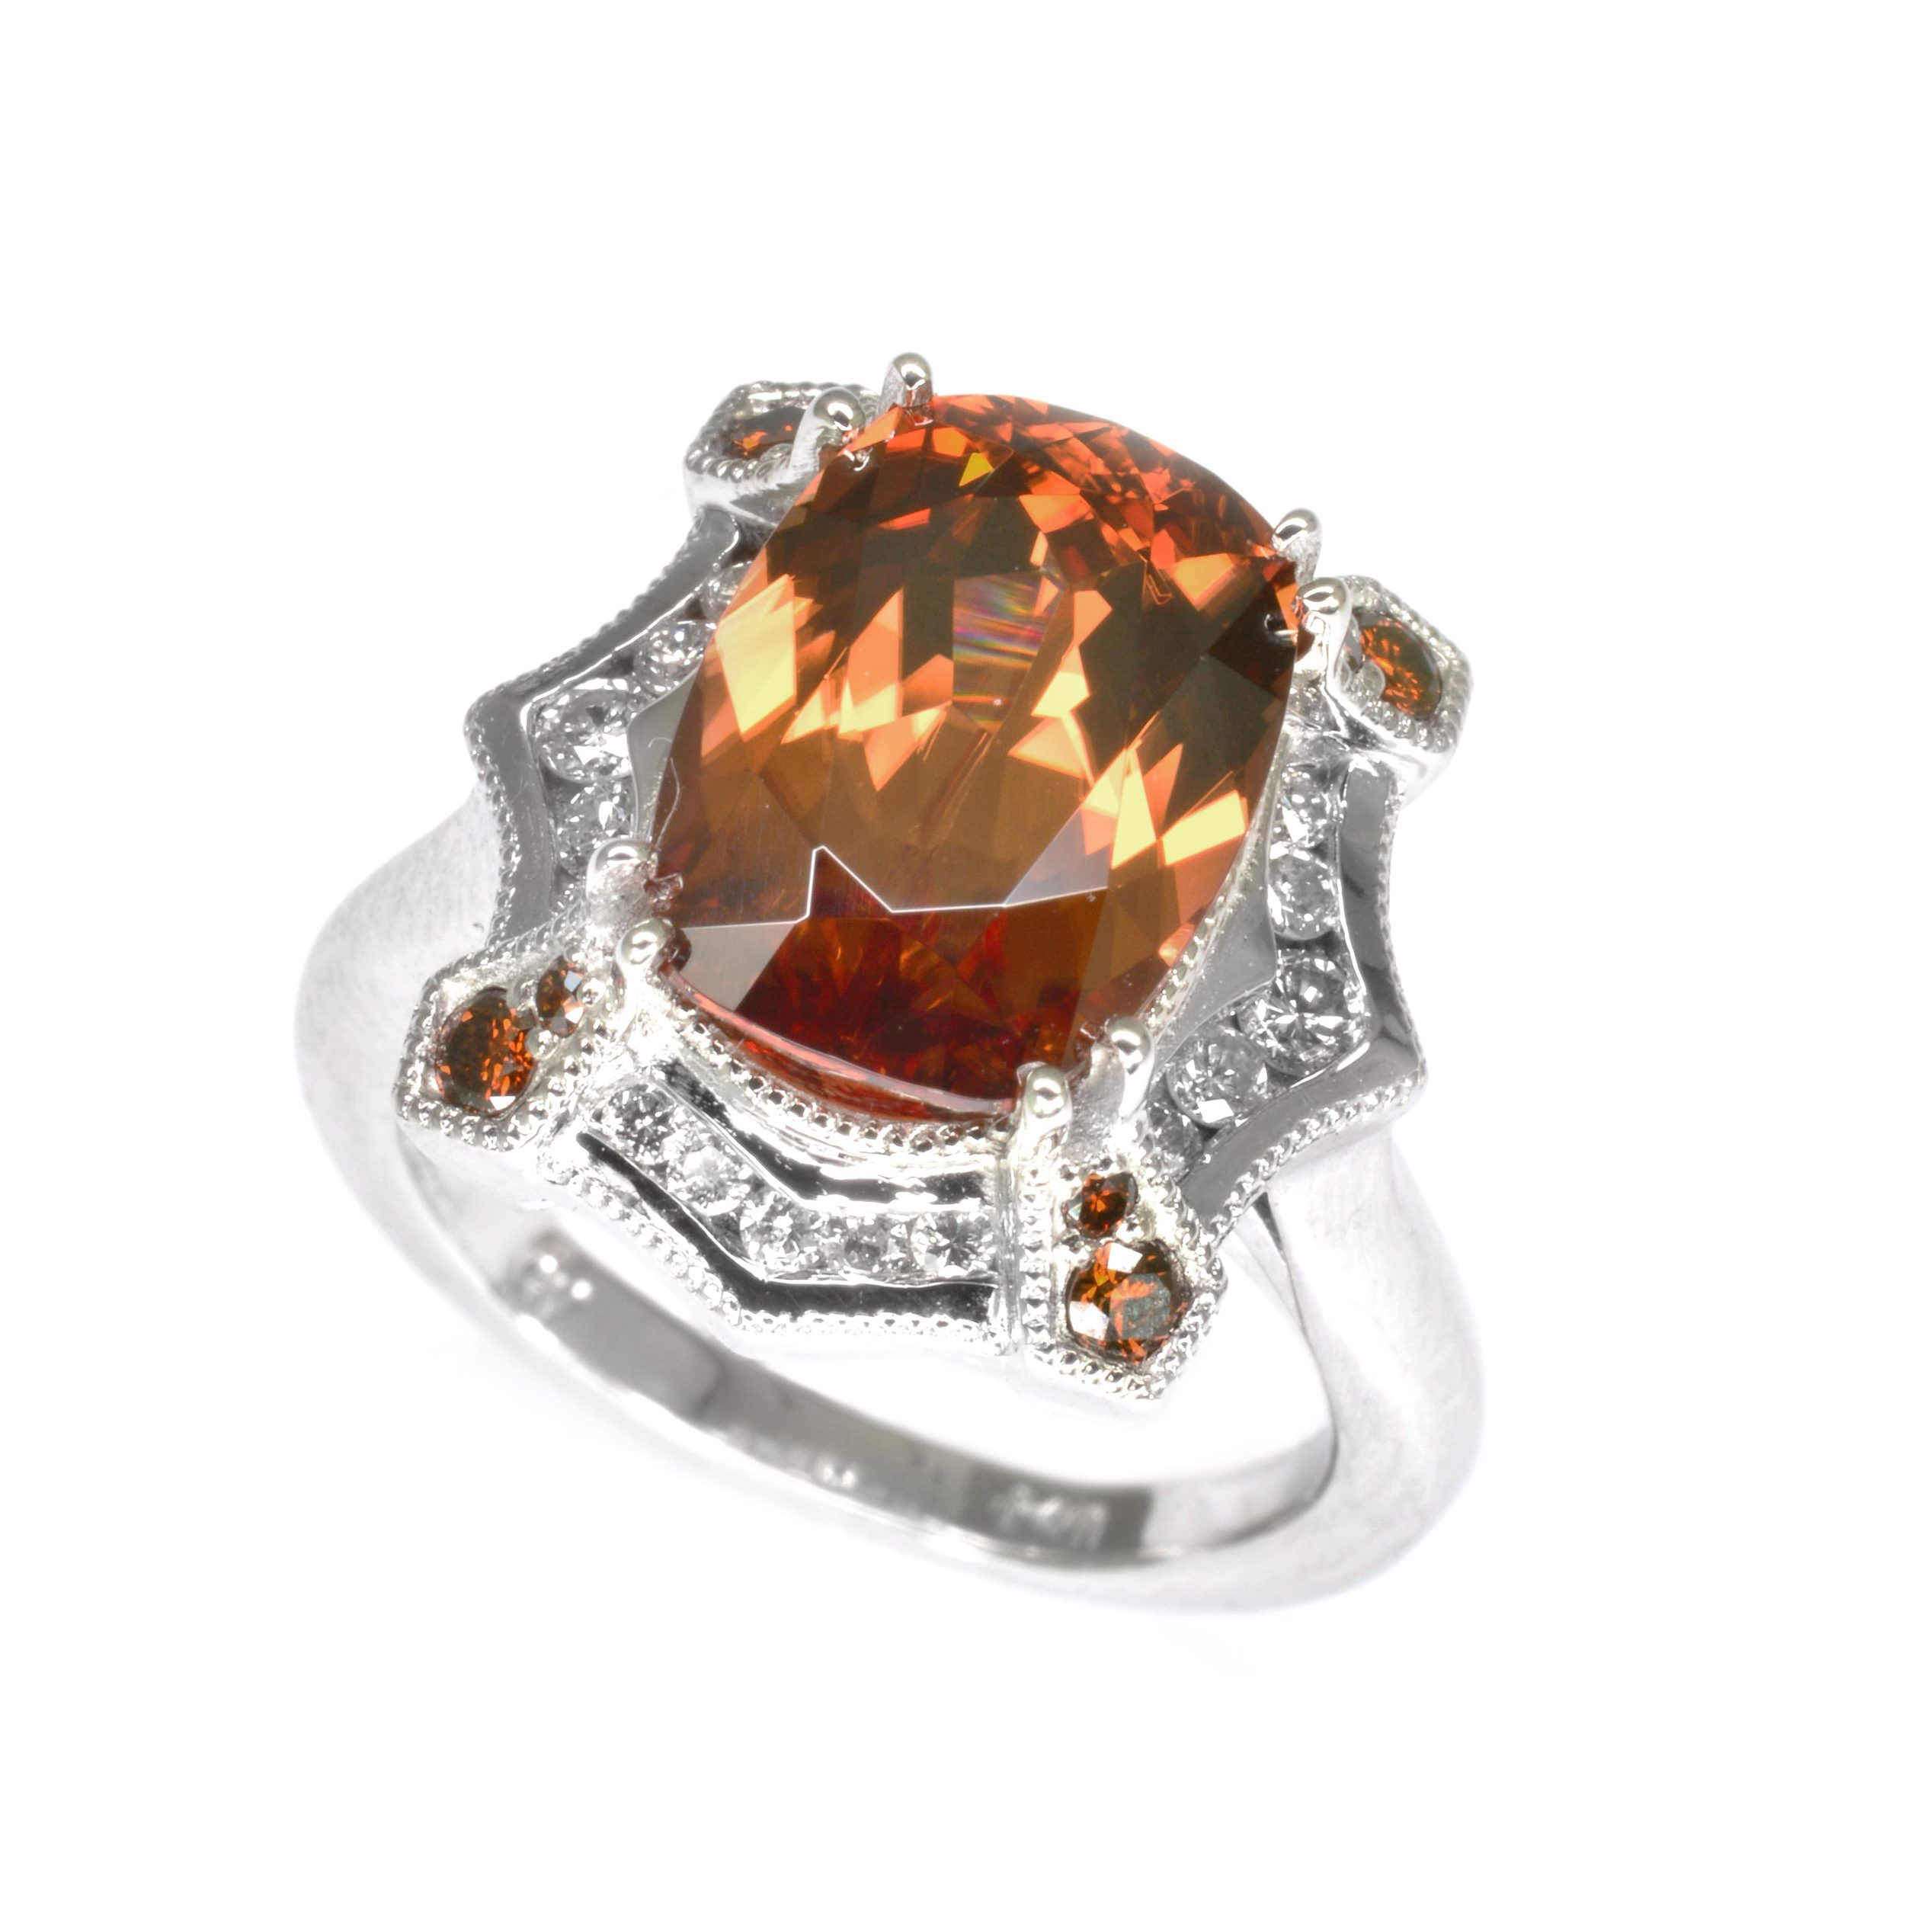 14k white gold ring set with a cinnamon zircon accented with channel set white diamonds and bead set cognac diamonds, designed by Jason Baskin.